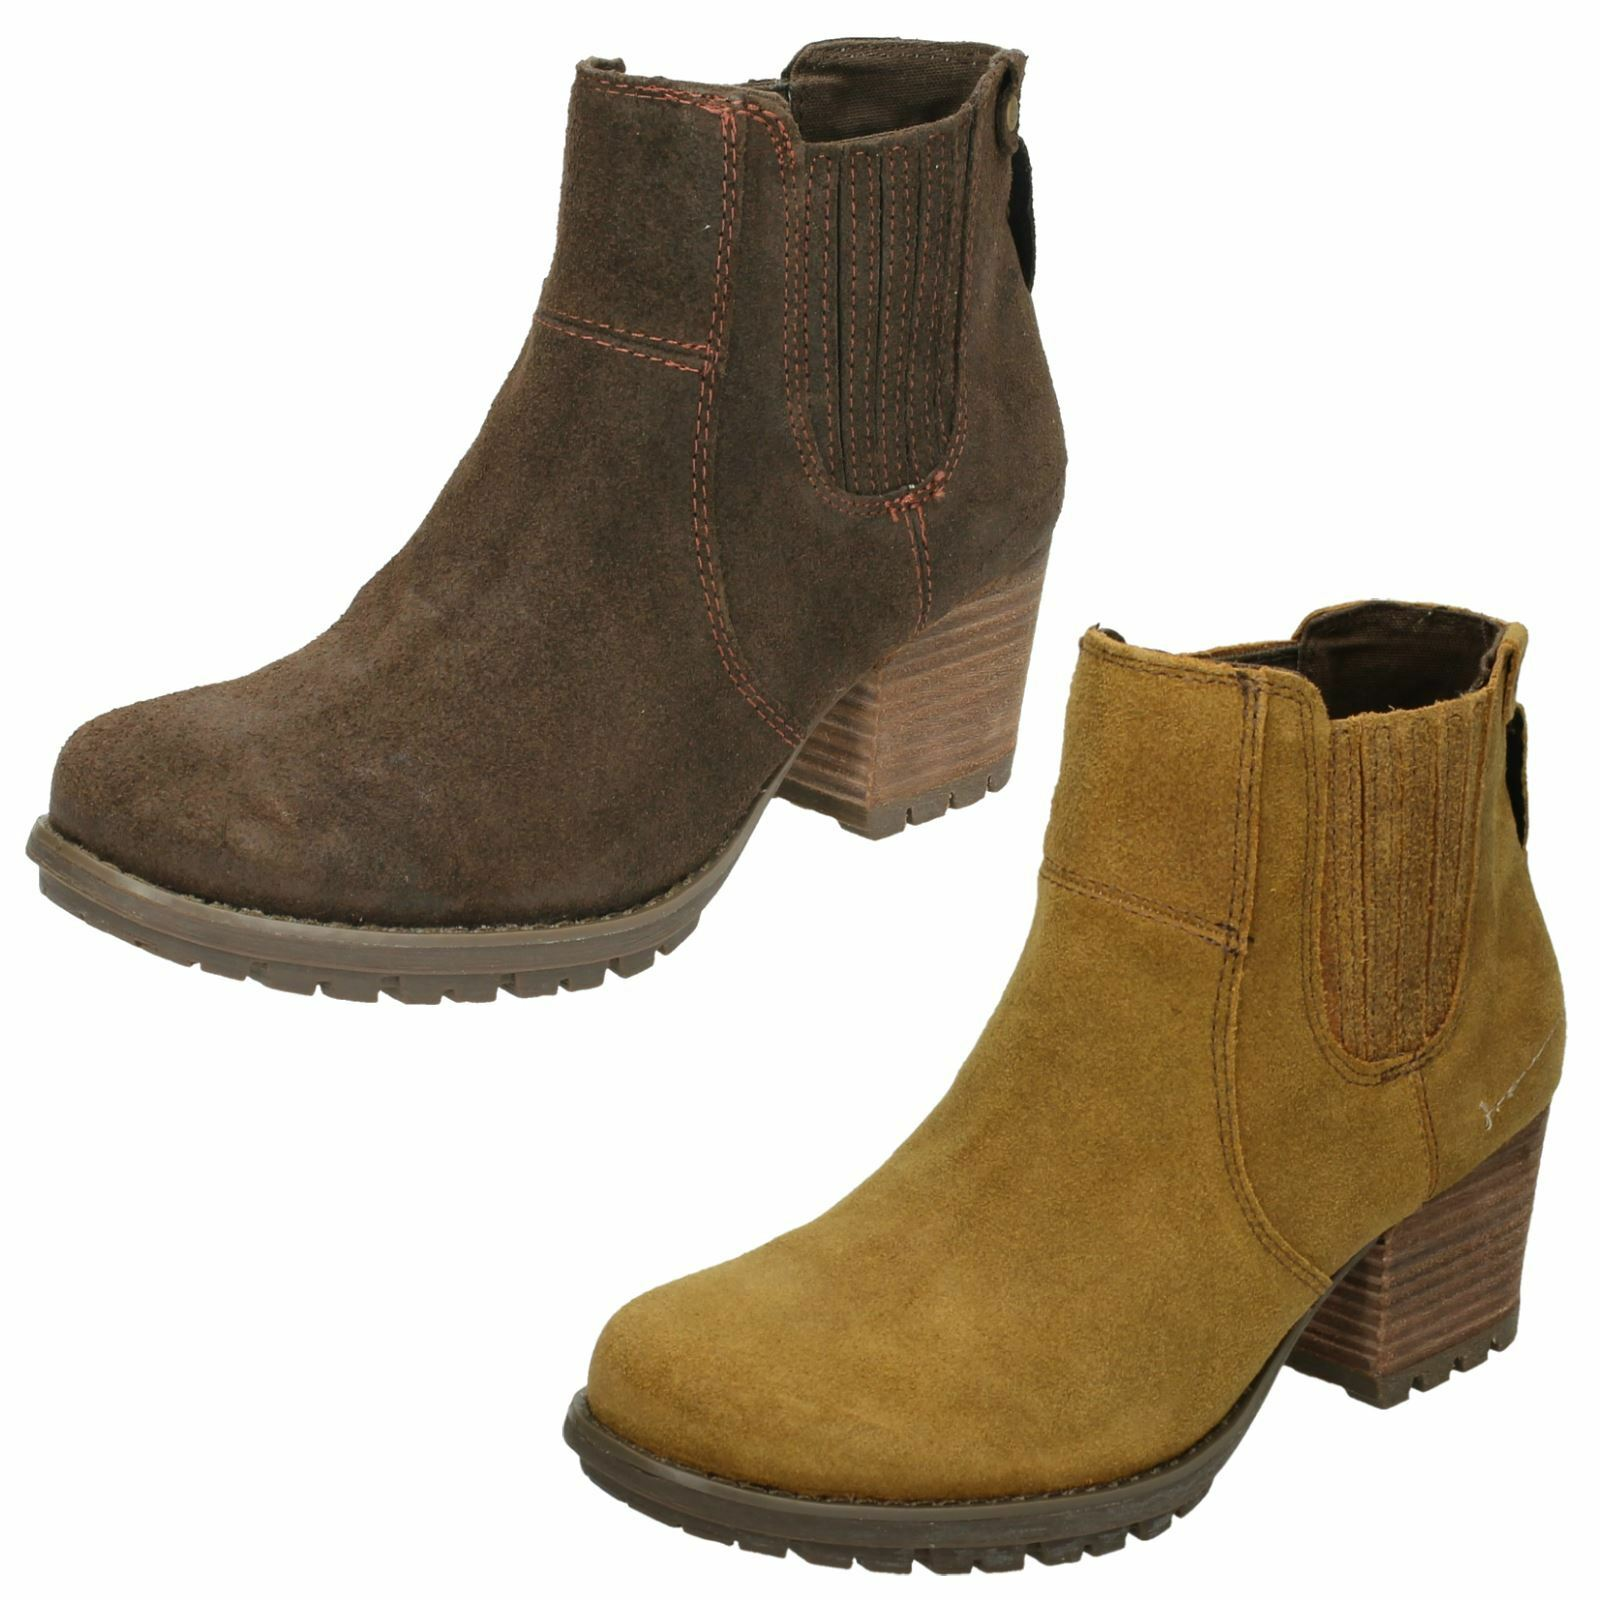 Damas Caterpillar Caterpillar Caterpillar Slip On botas al tobillo-Allison f75f50